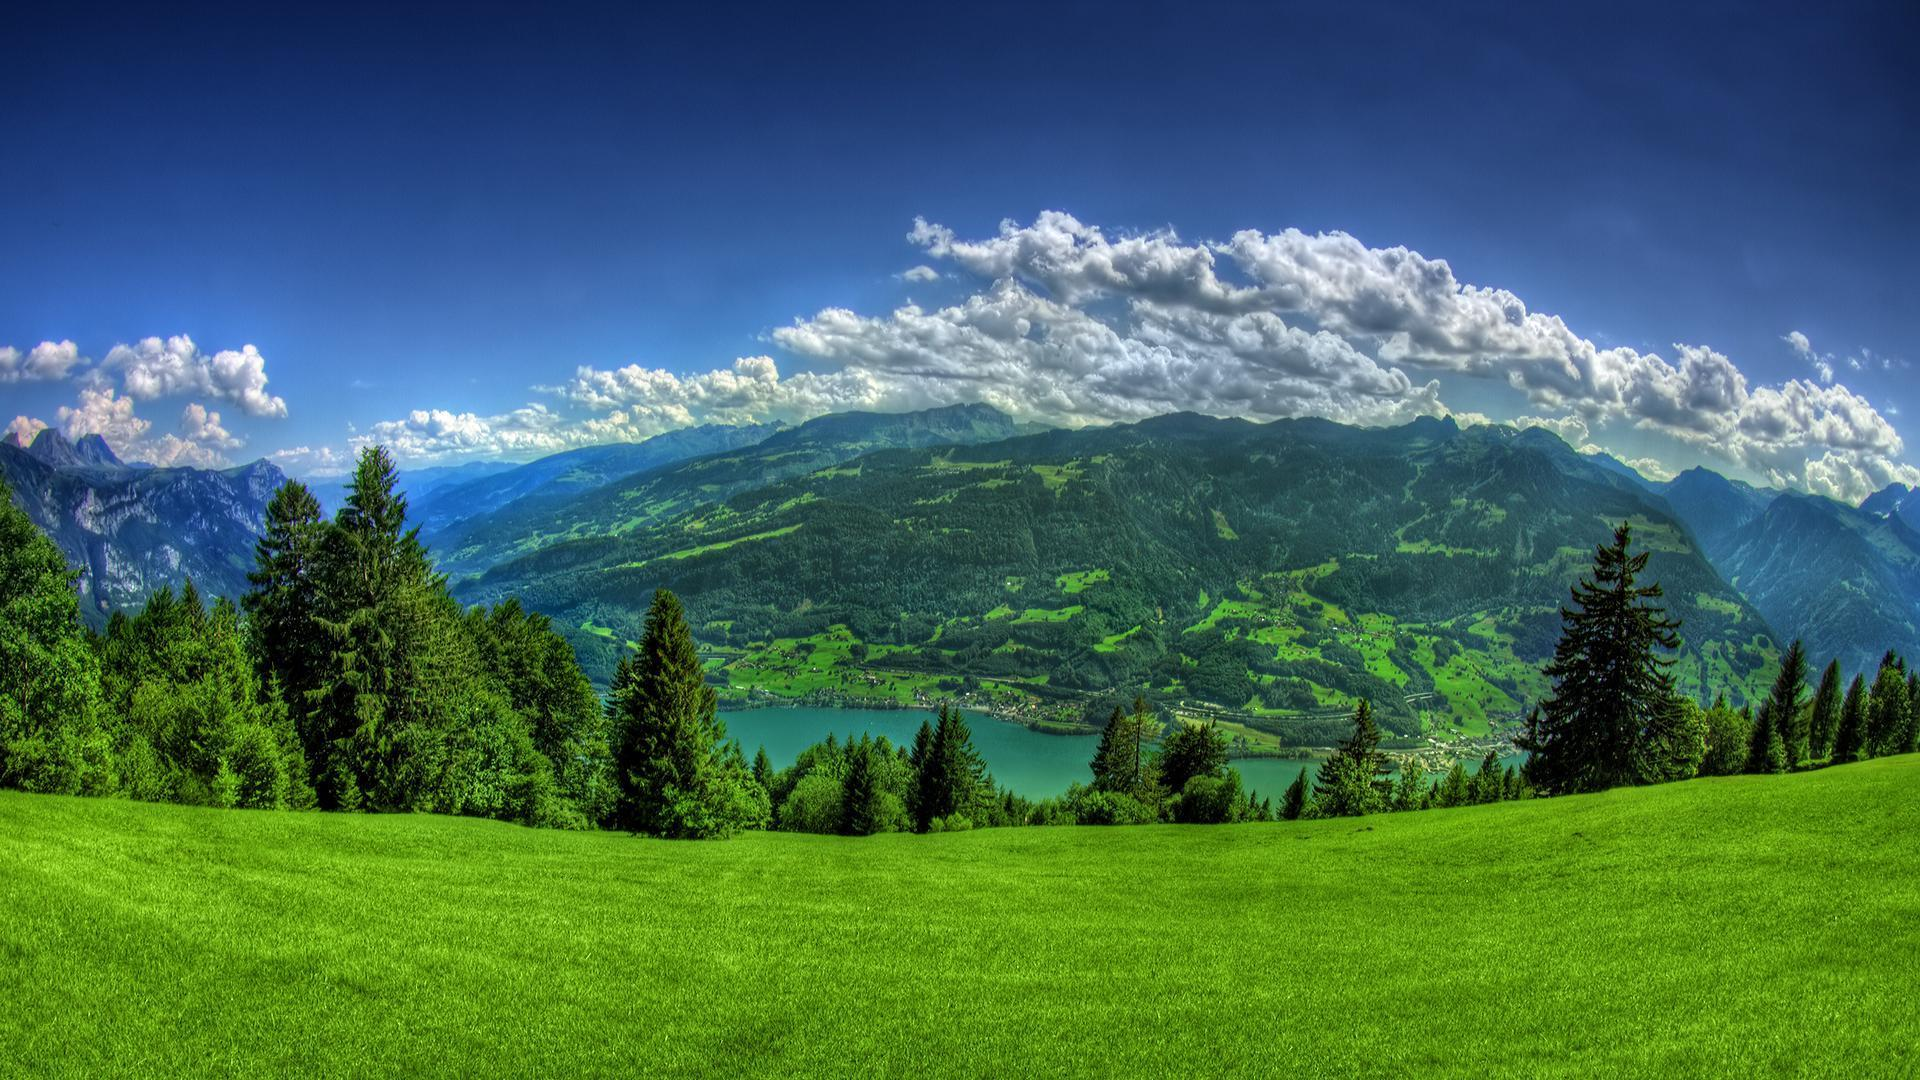 P Hd Image Nature Wallpaper Green Mountain 1080p Of Laptop Images ...